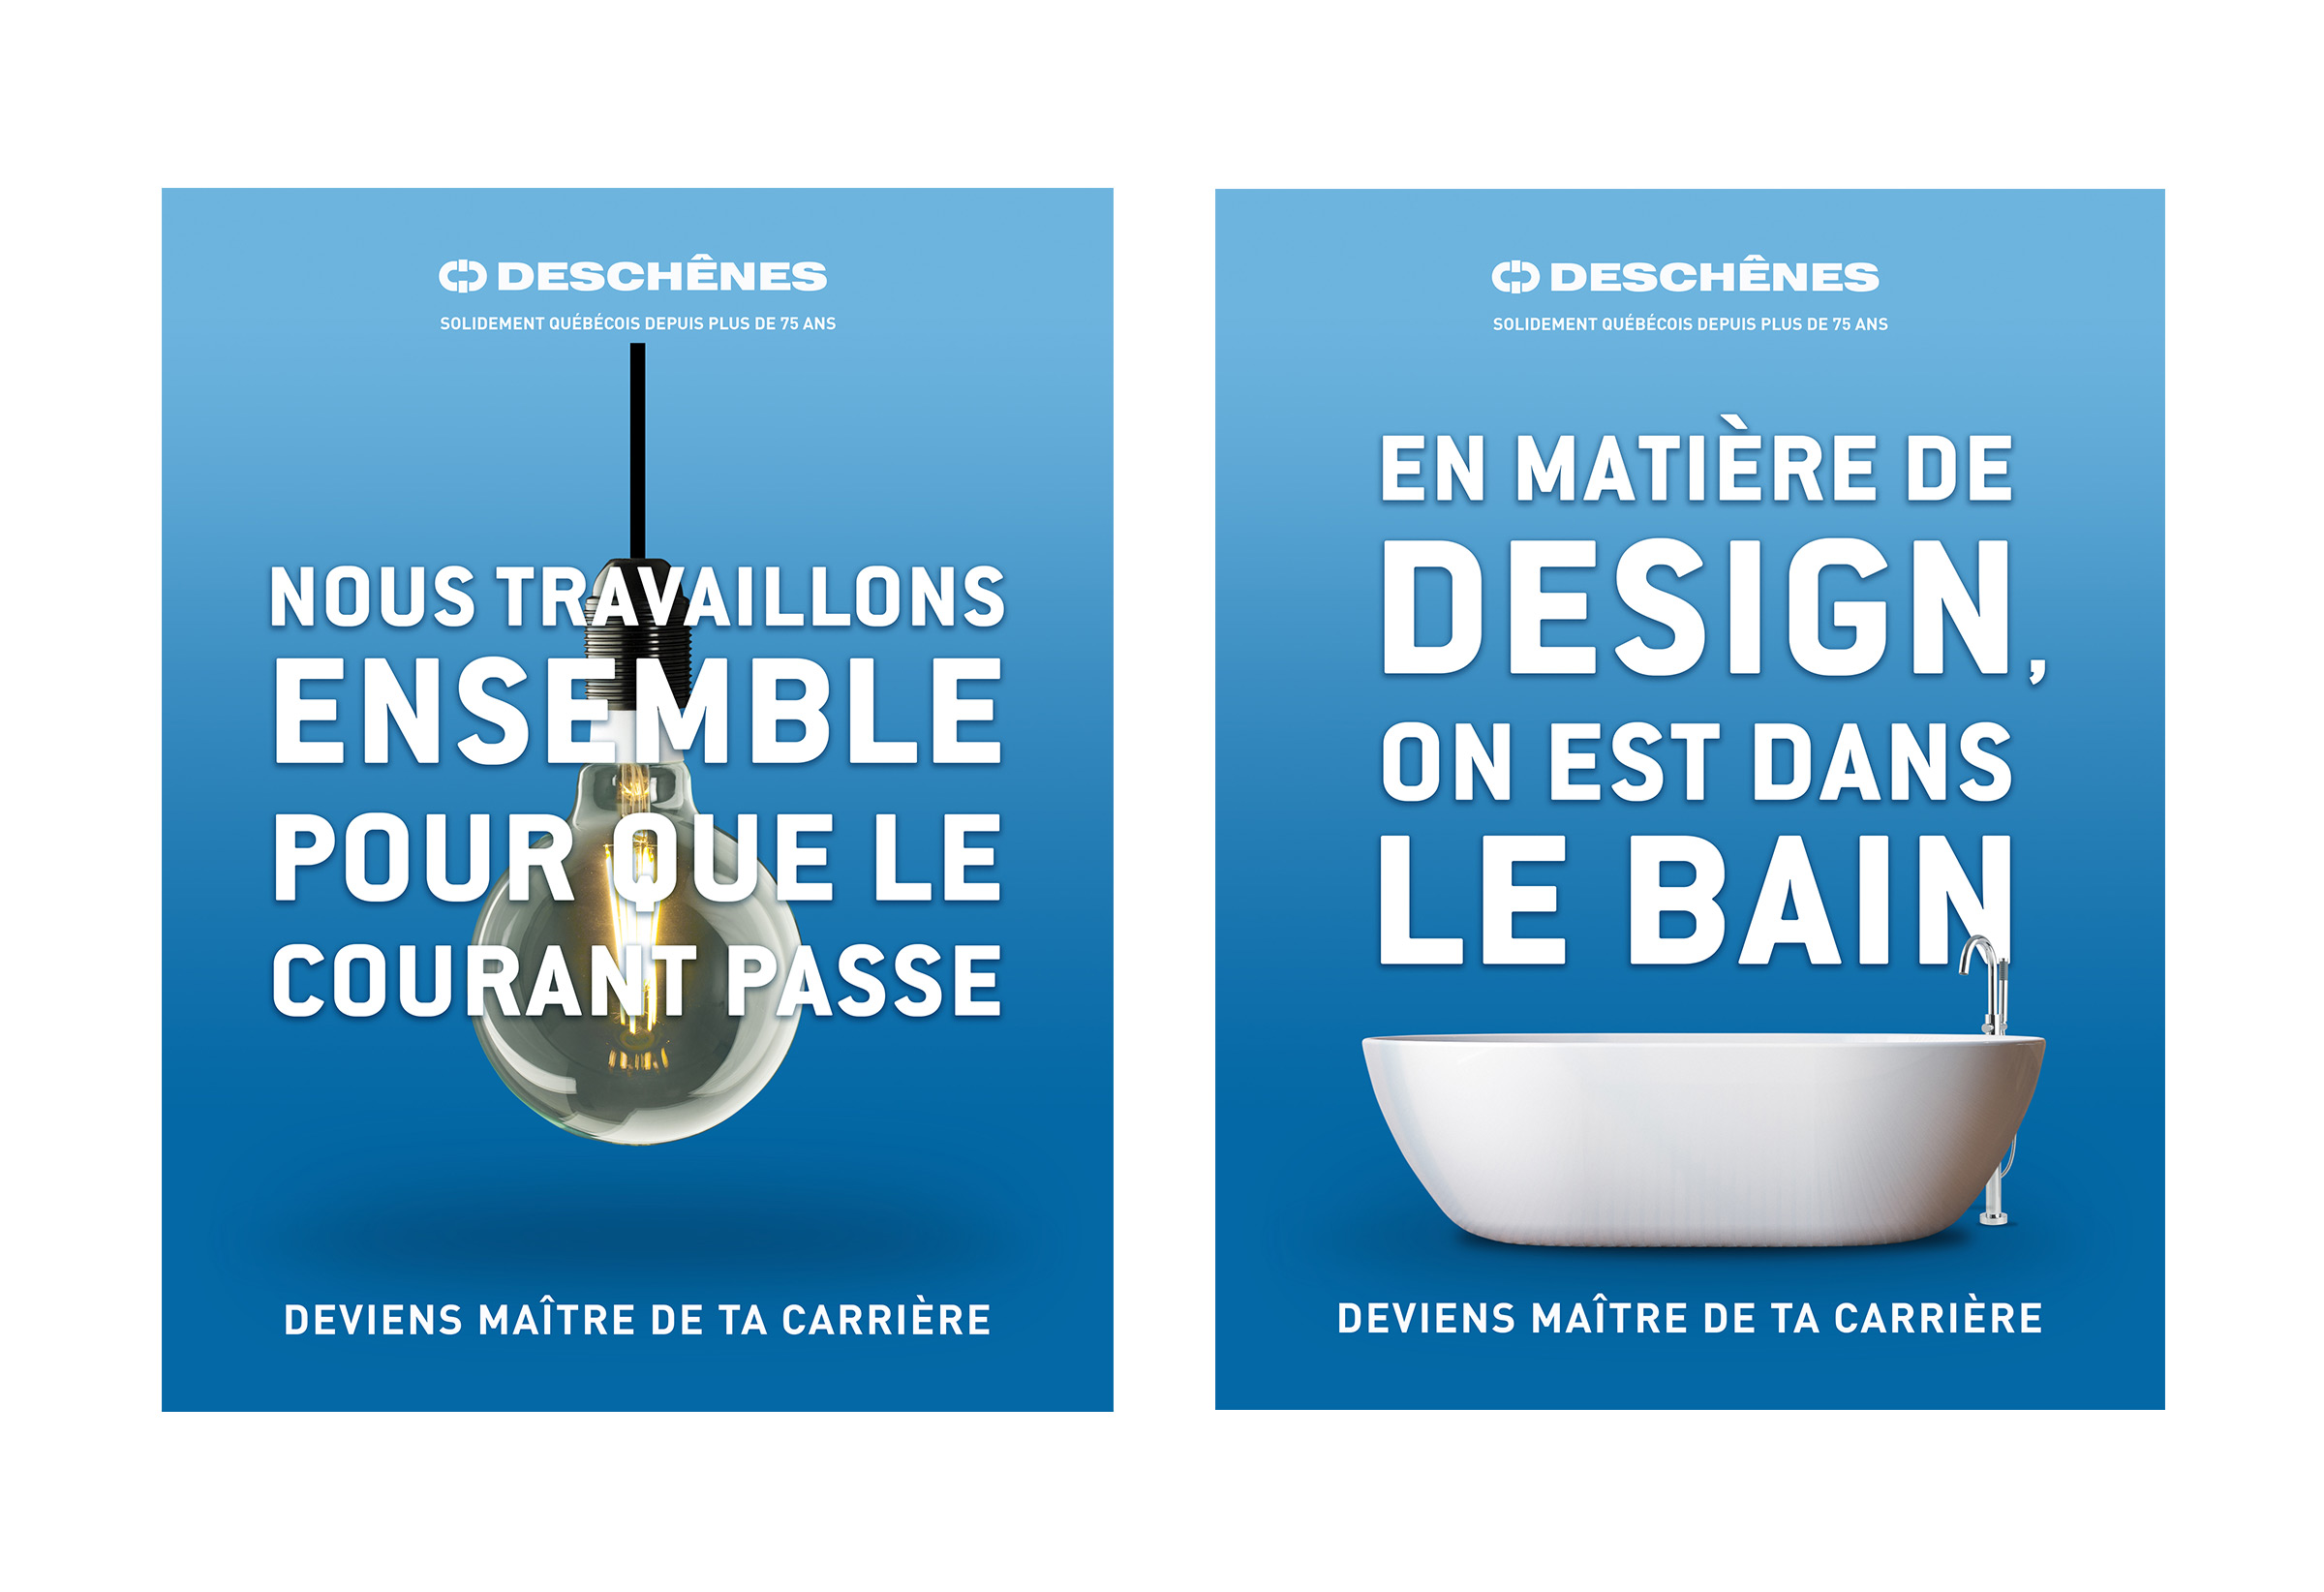 sept24 projects - Develop a unified employer brand for Deschênes